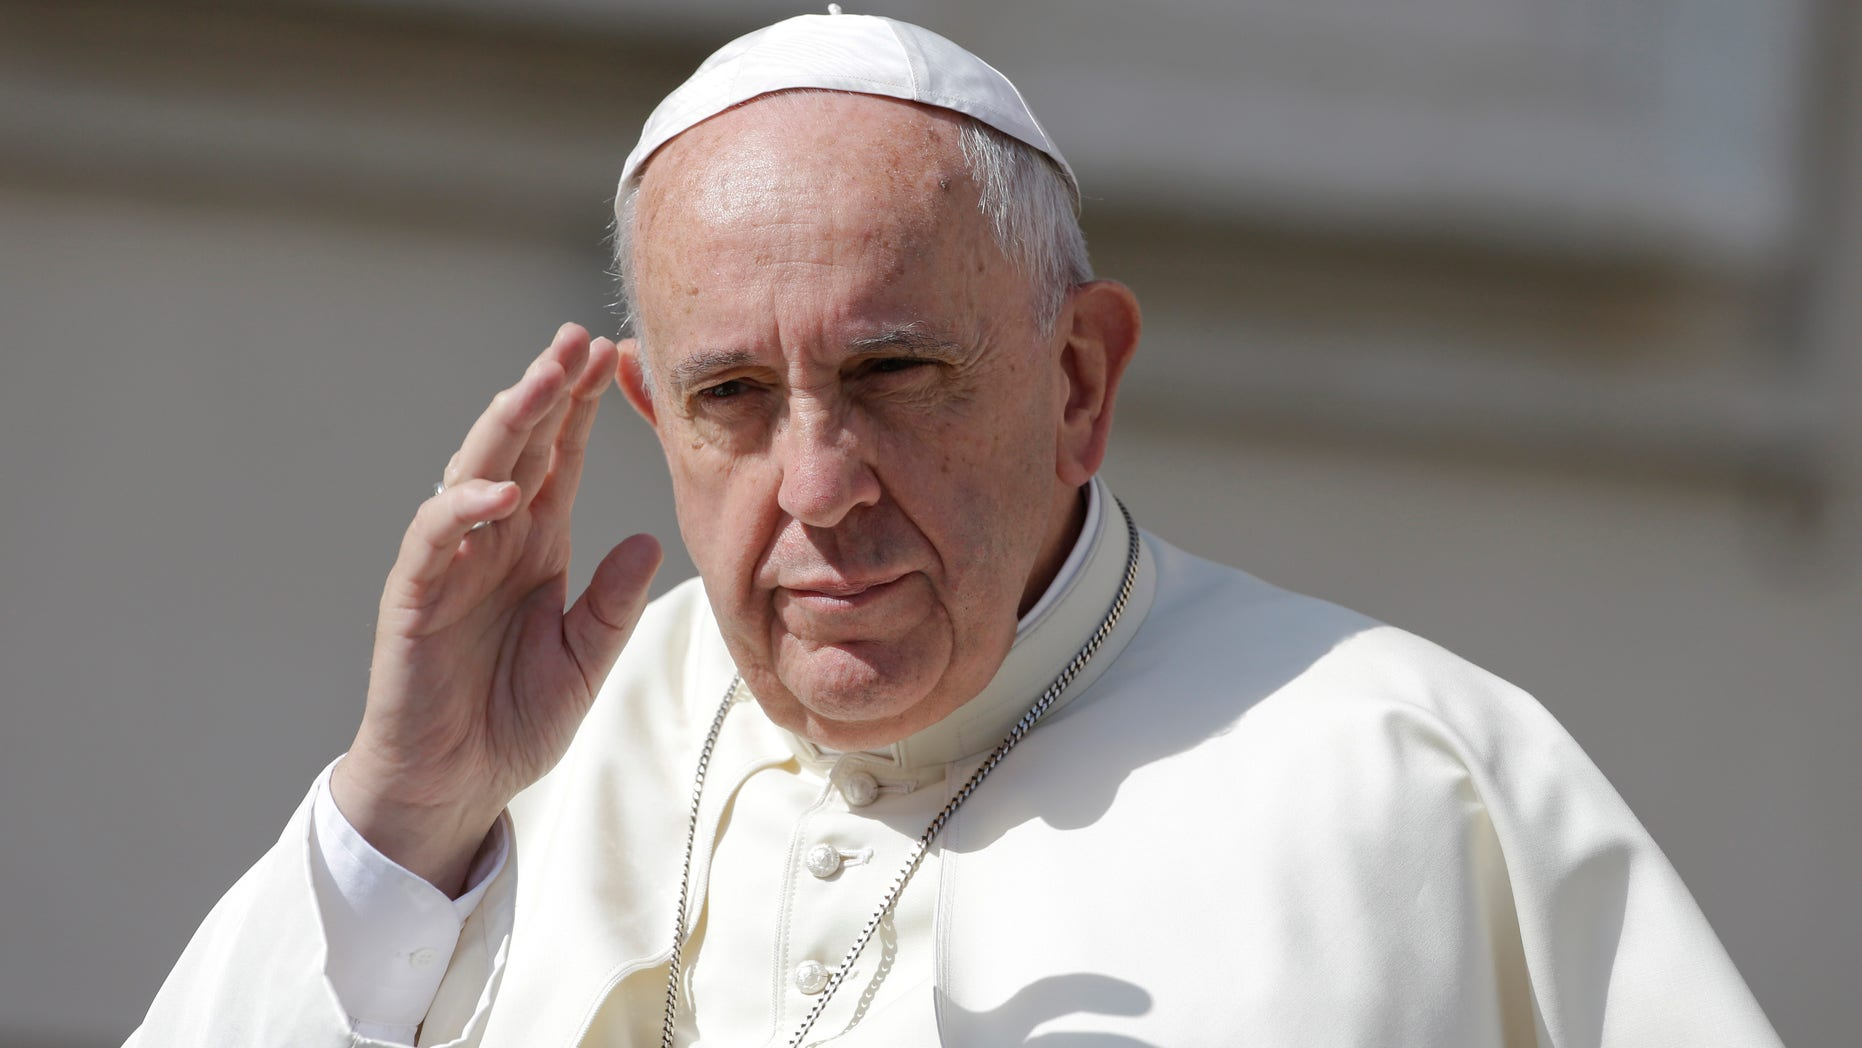 Pope Francis in St. Peter's Square at the Vatican, Wednesday, June 17, 2015.